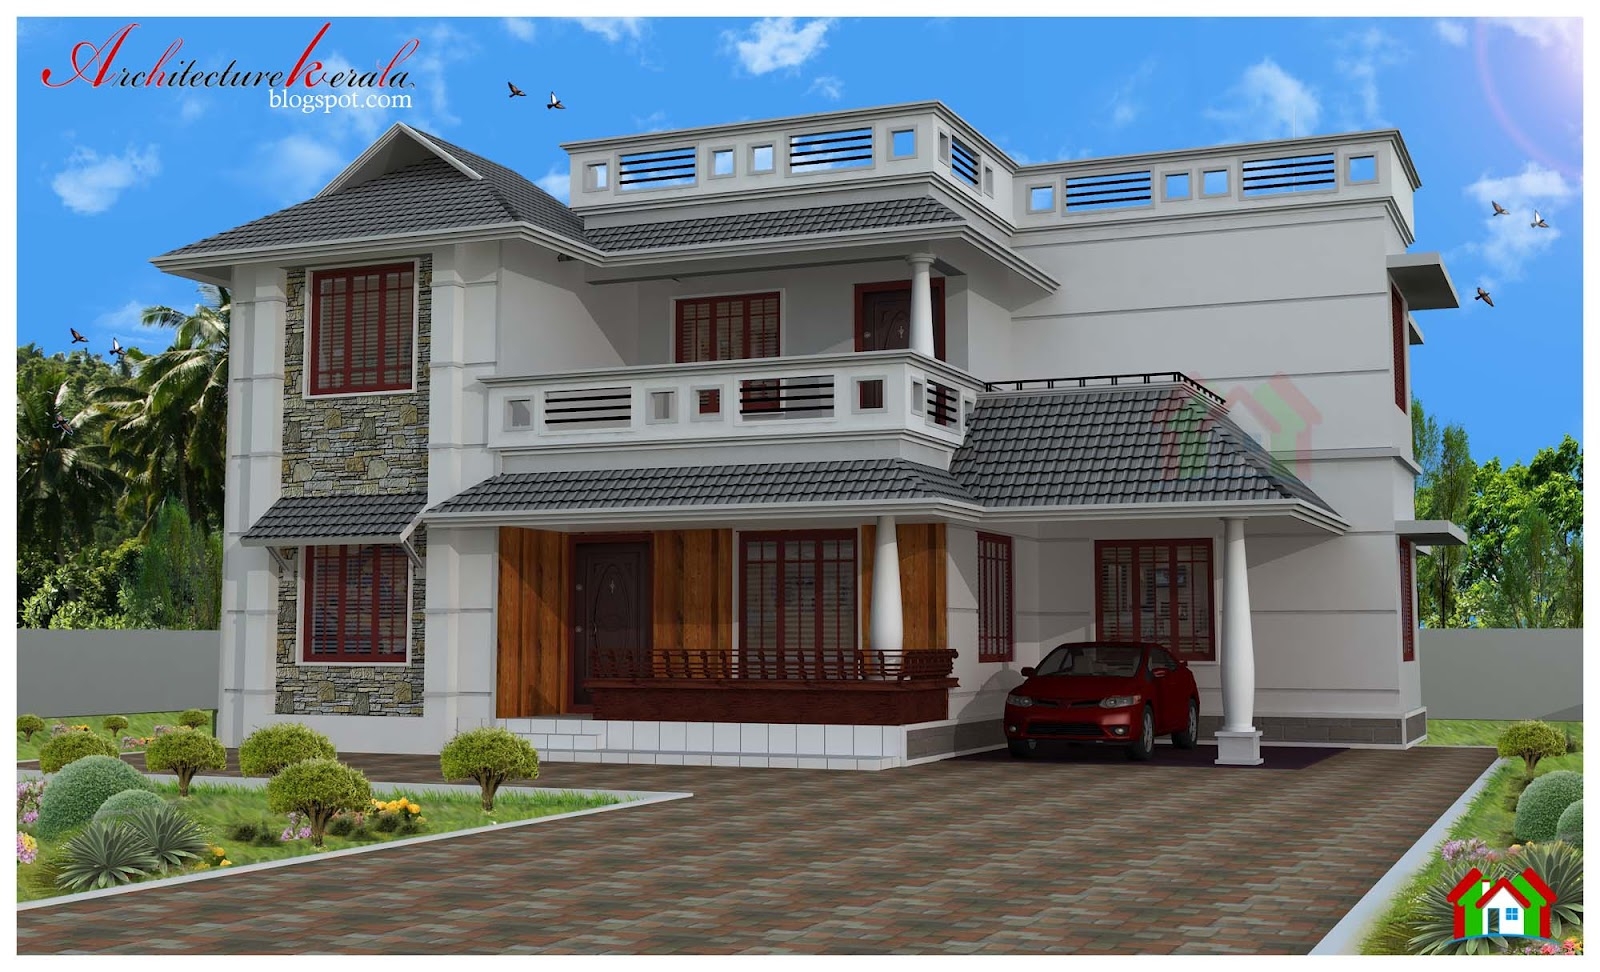 Architecture kerala four bed room house plan for House 4